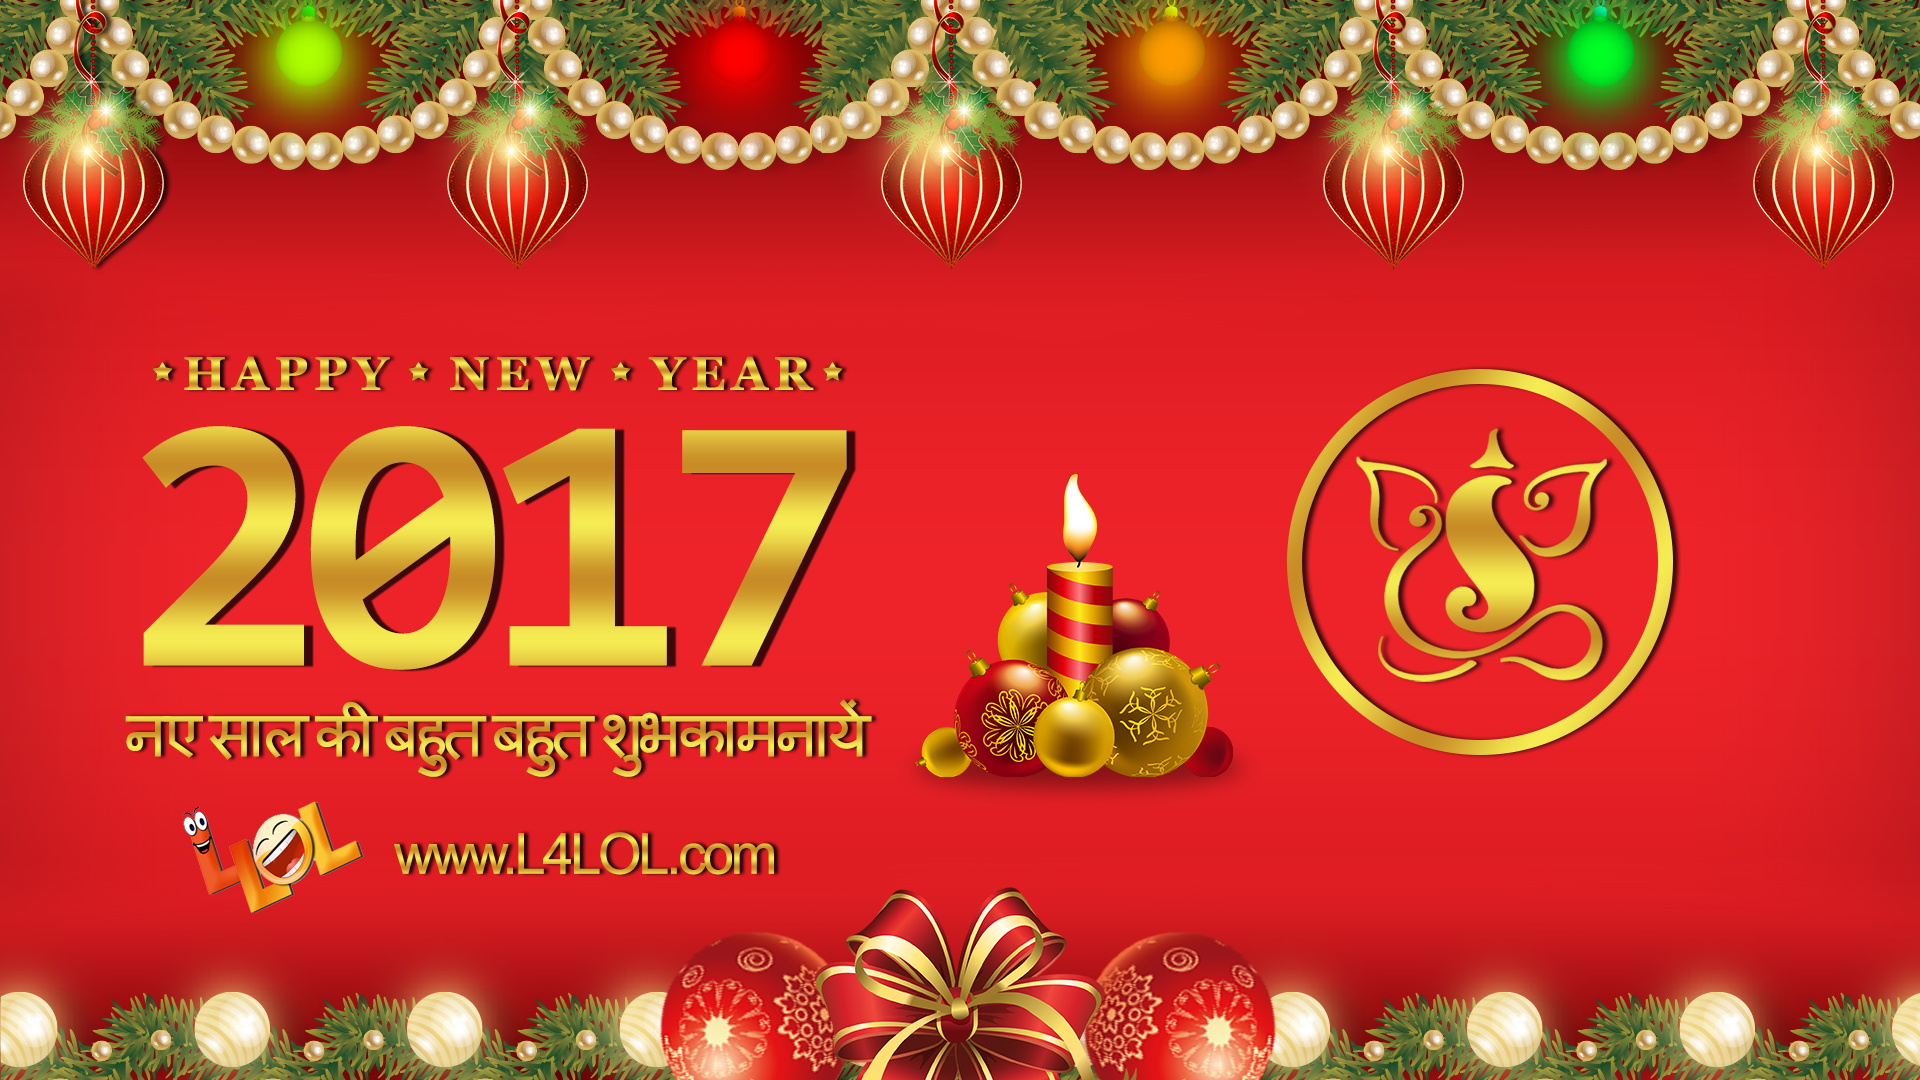 New Year 2017 Wallpaper amp HD Background Images 1920x1080